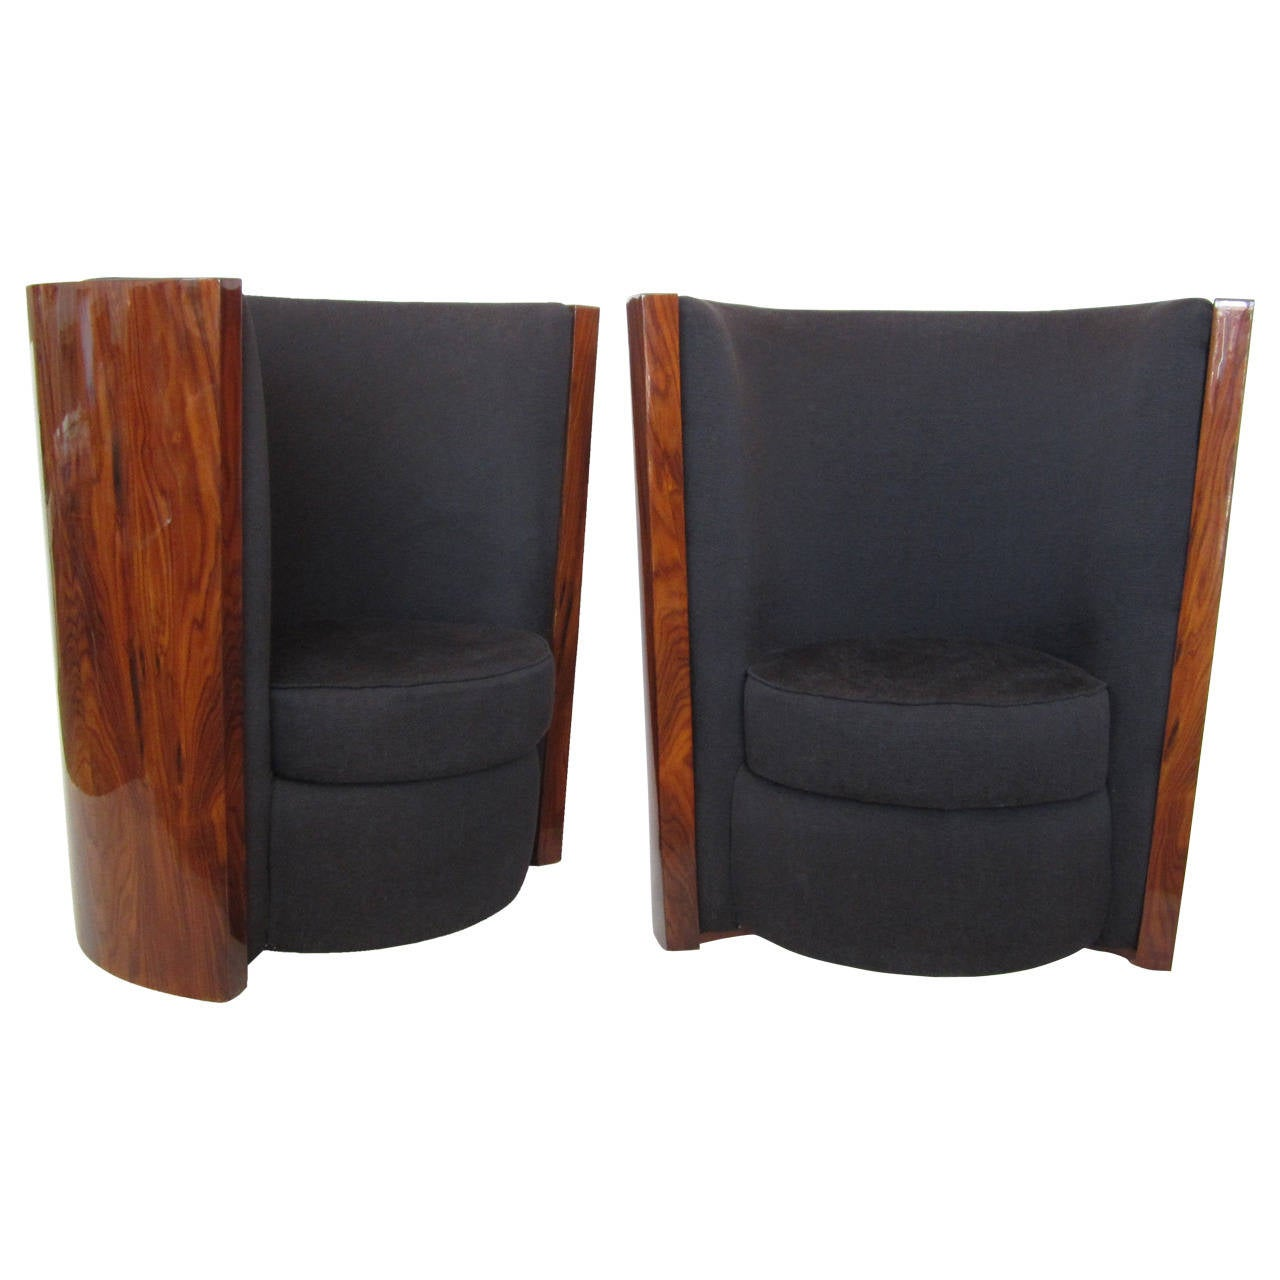 Pair Of Curved High Back Cherrywood Art Deco Style Chairs